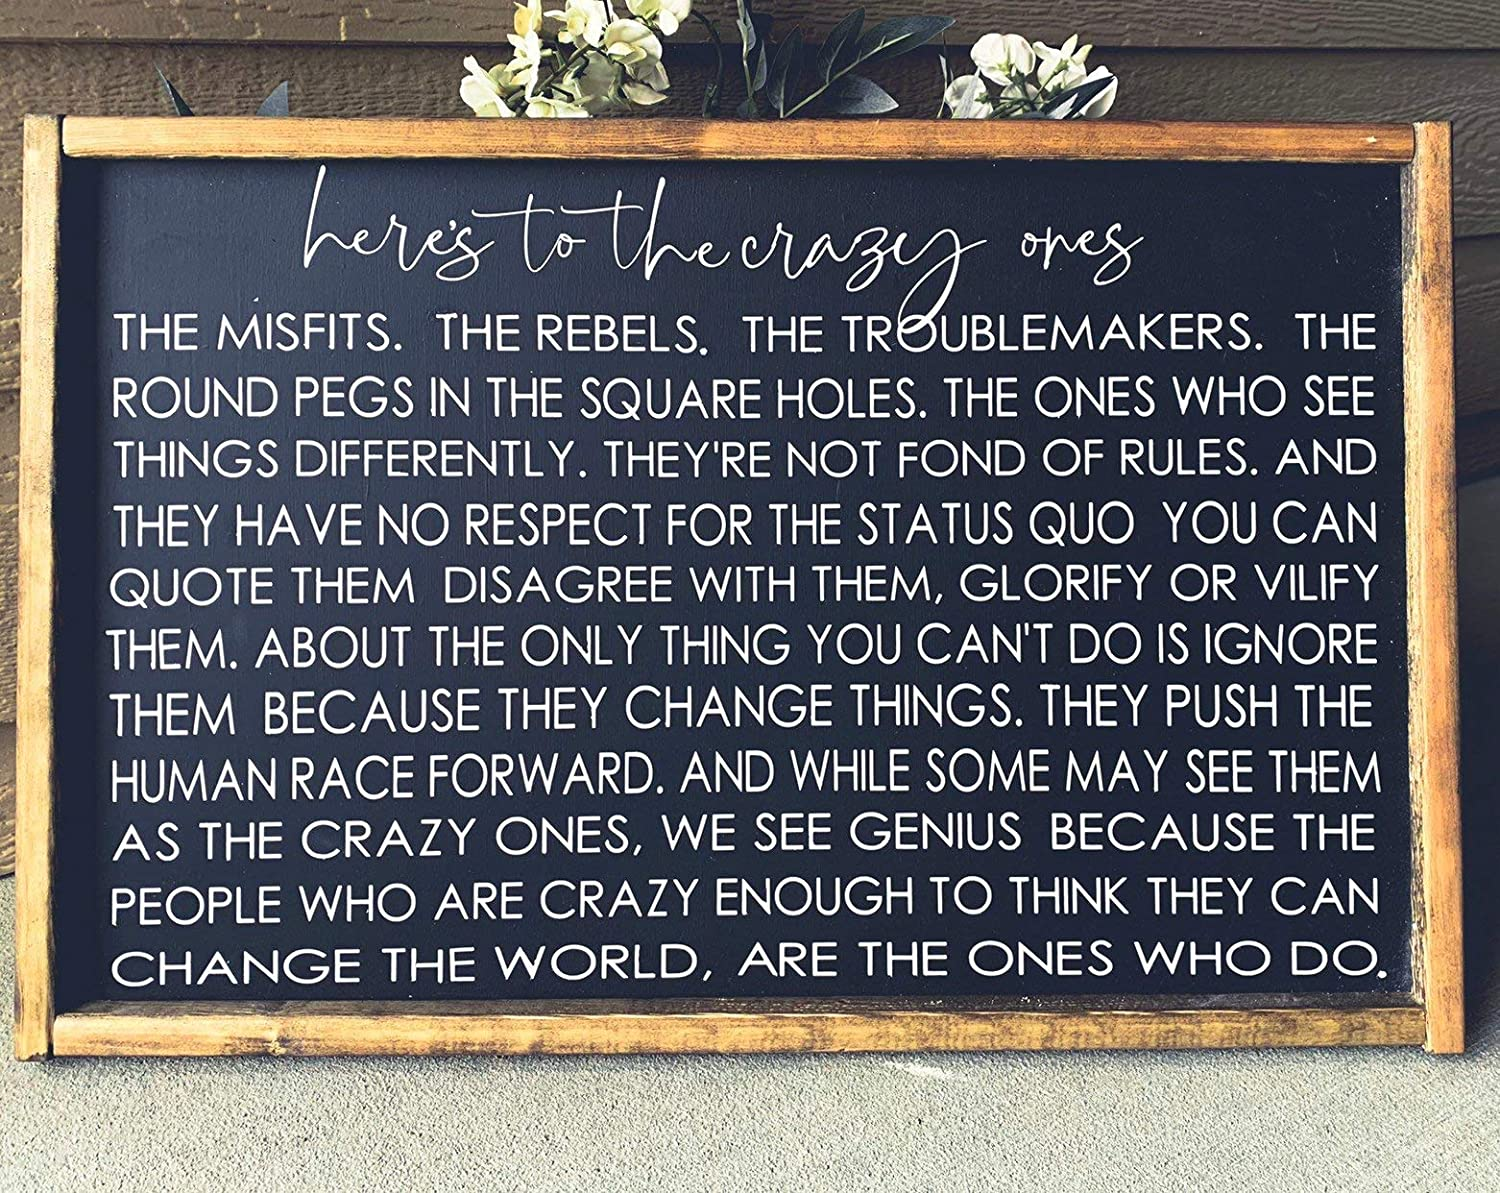 bawansign Farmhouse Wall Decor Steve Jobs Quote Signs with Quotes Signs  Signs for Home Farmhouse Sign Heres to The Crazy Ones